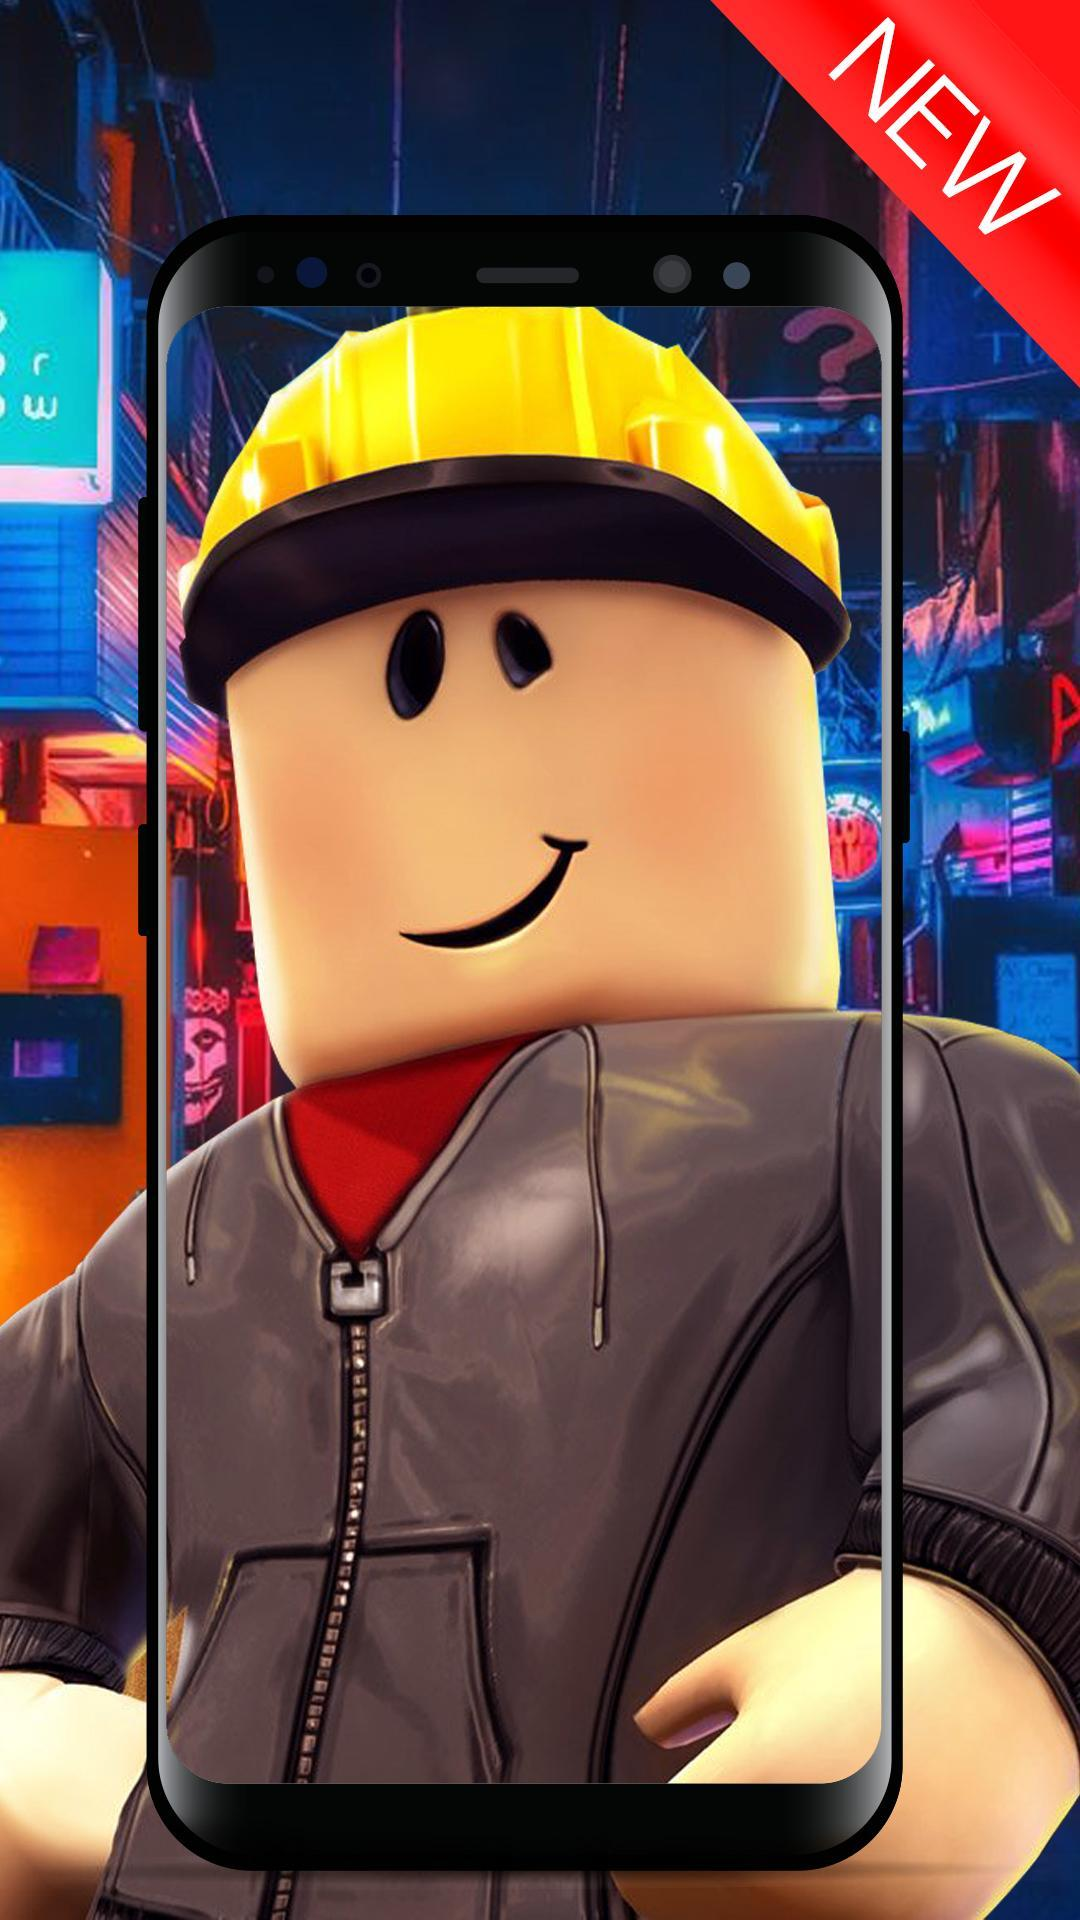 Roblox Free Wallpapers Hd 2019 For Android Apk Download